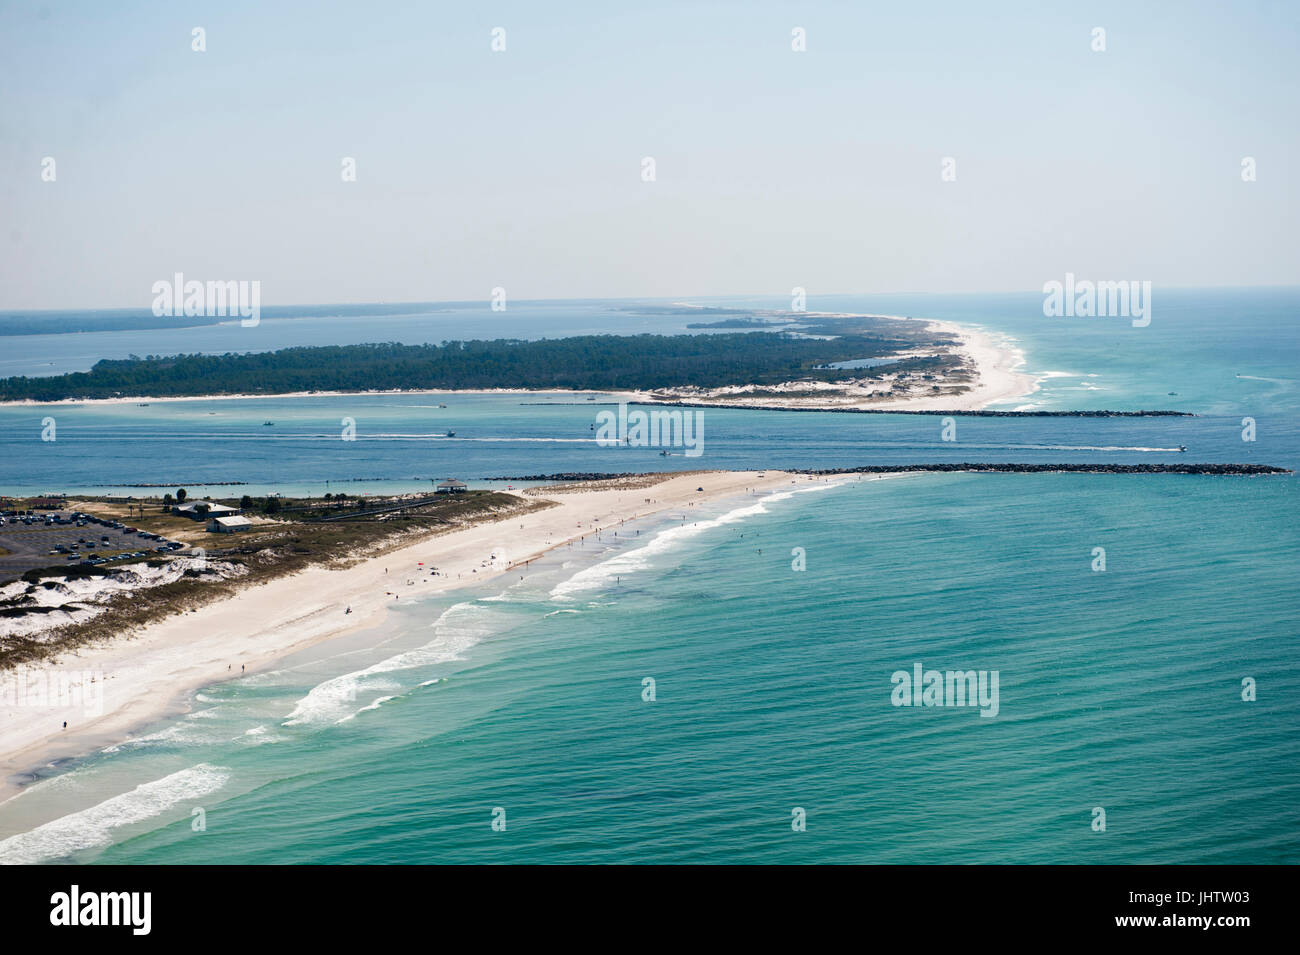 an aerial view of the coastline of panama city beach florida at